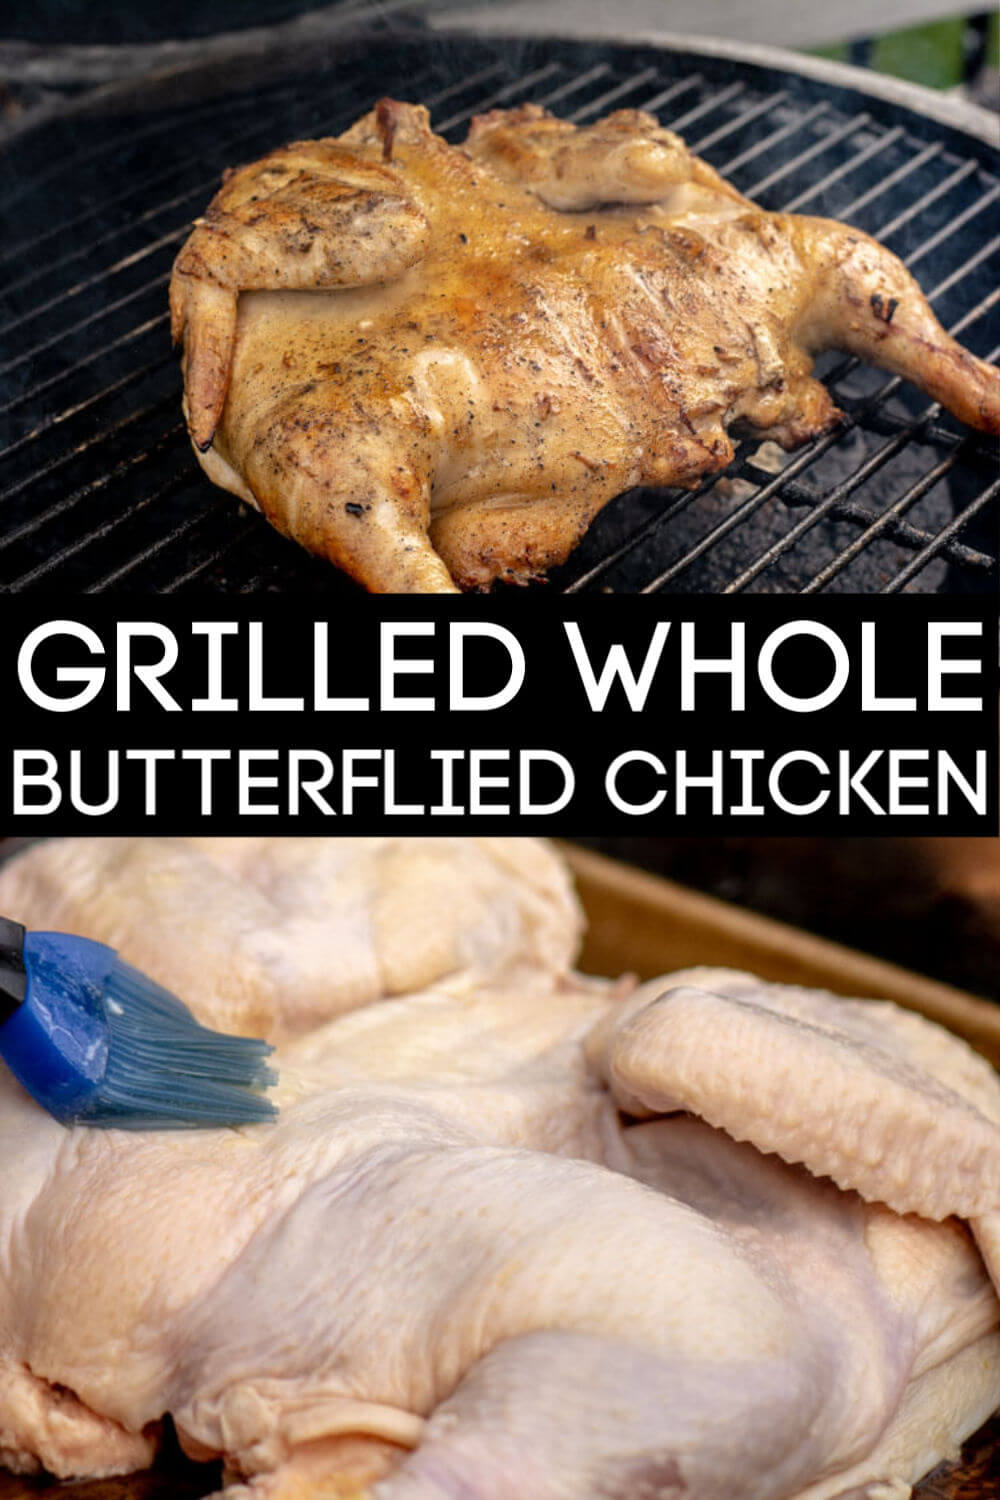 Grilled Whole Butterflied Chicken is perfect on indirect heat on the Big Green Egg #BGE #BigGreenEgg #ButterfliedChicken #Grill #Grilled #grilledchicken